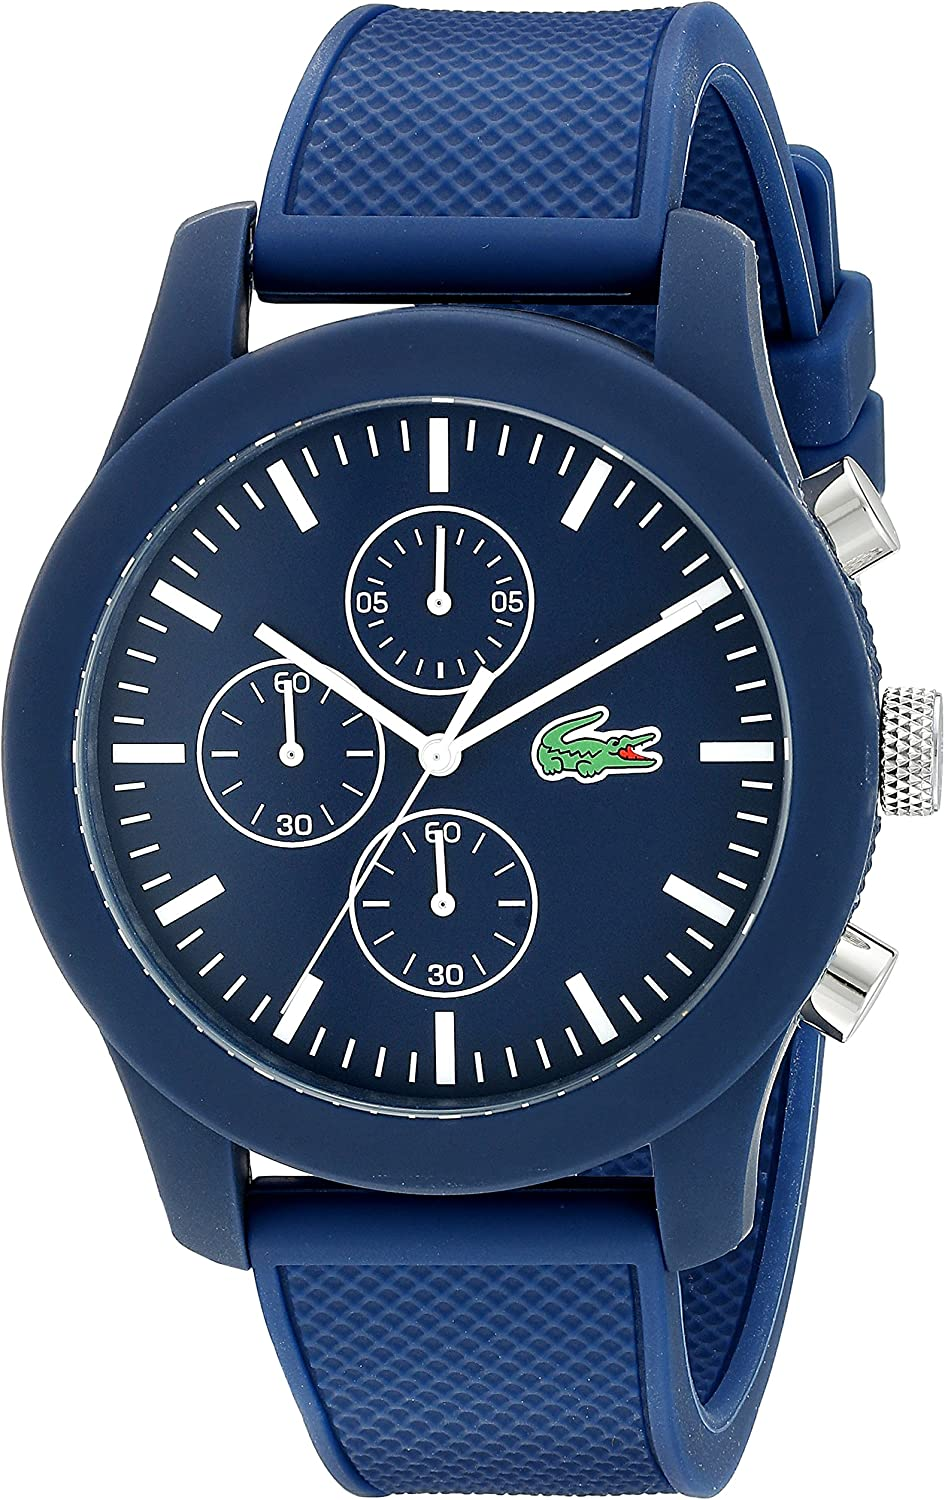 Lacoste Men's 2010824 12.12 Analog Display Japanese Quartz Blue Watch